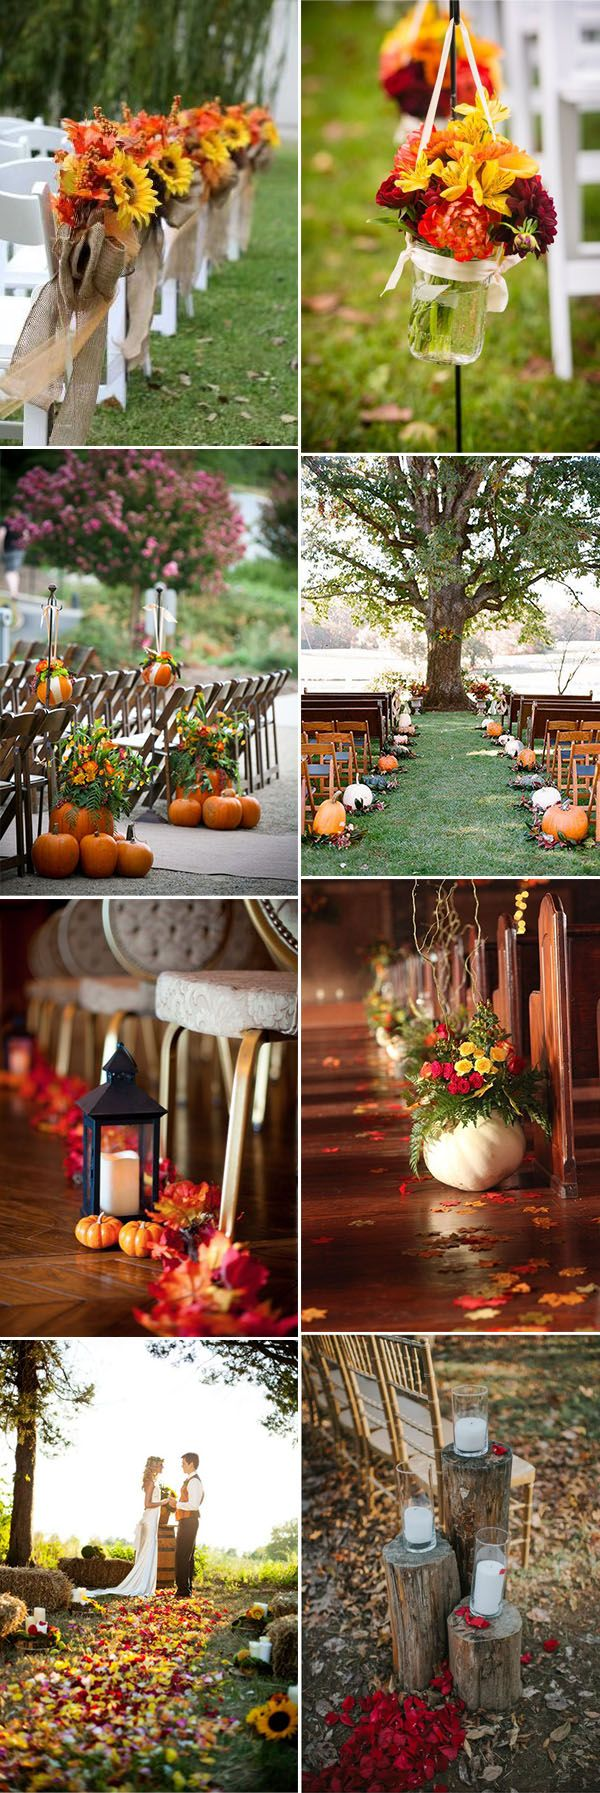 Best 25+ Wedding ceremony flowers ideas on Pinterest | Wedding ceremony  backdrop, Pew flowers and Church aisle decorations wedding